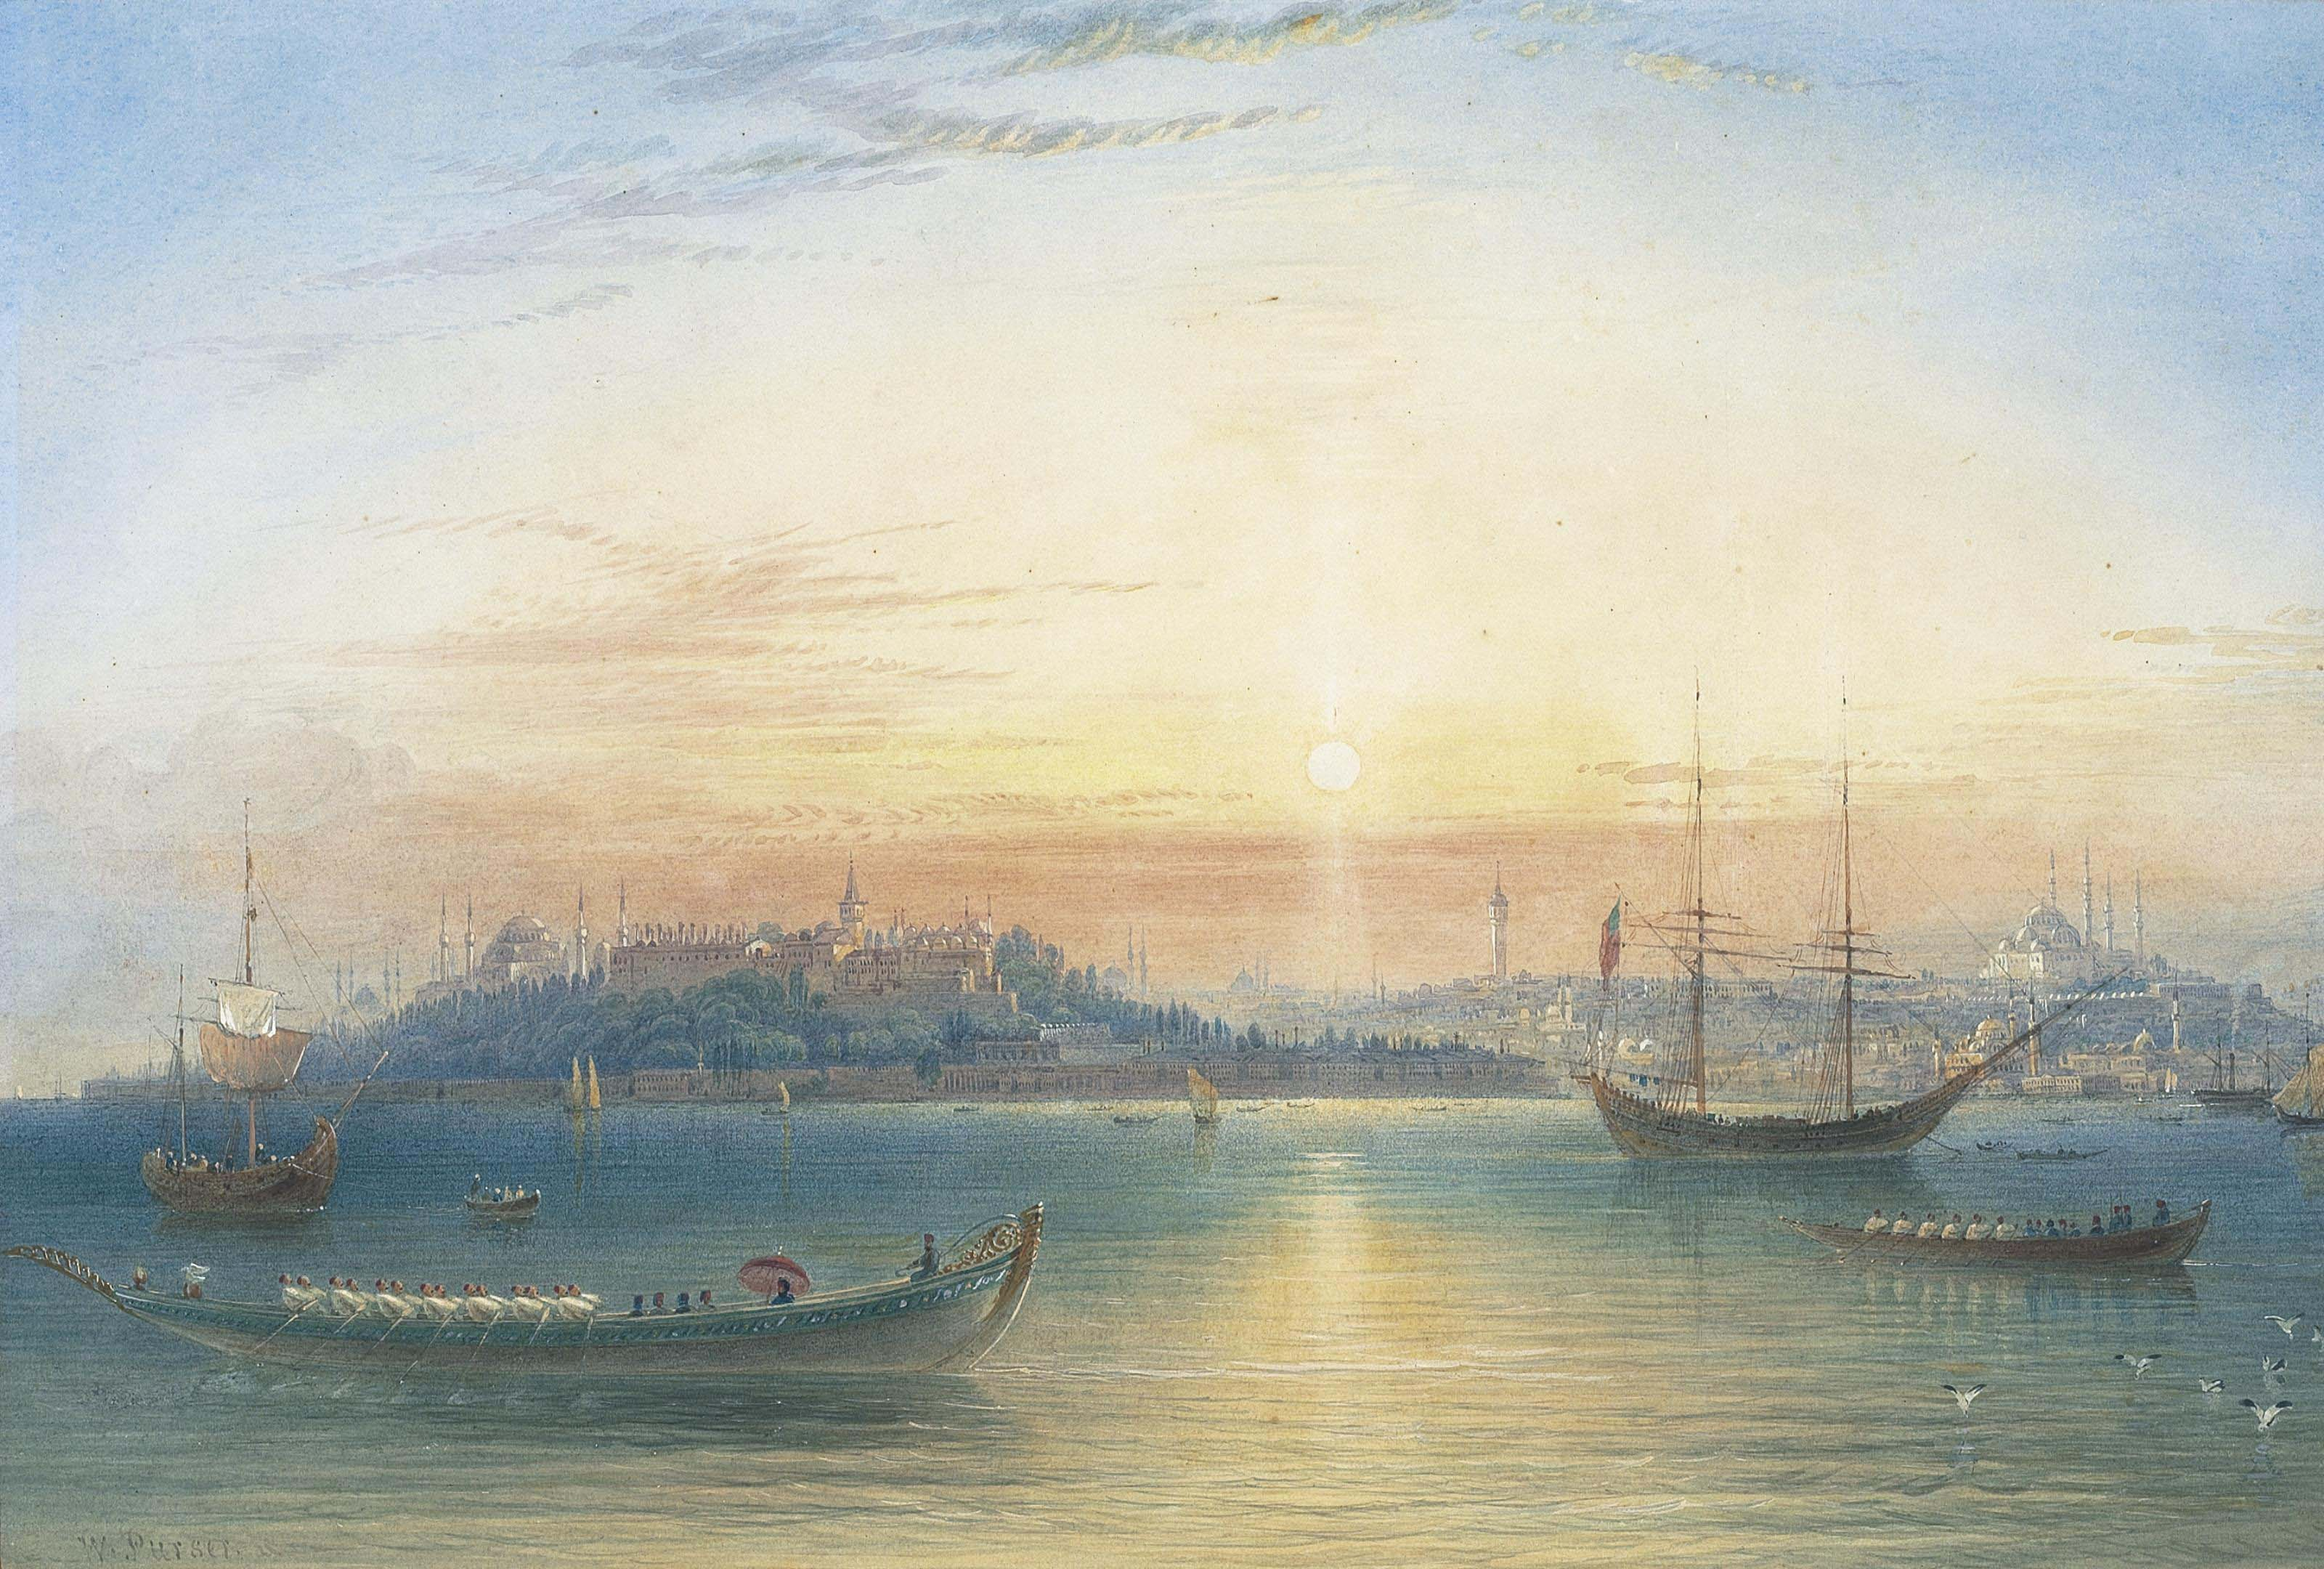 Constantinople, showing the Topkapi and the Suleimaniye with the Sultan's Barge in the foreground